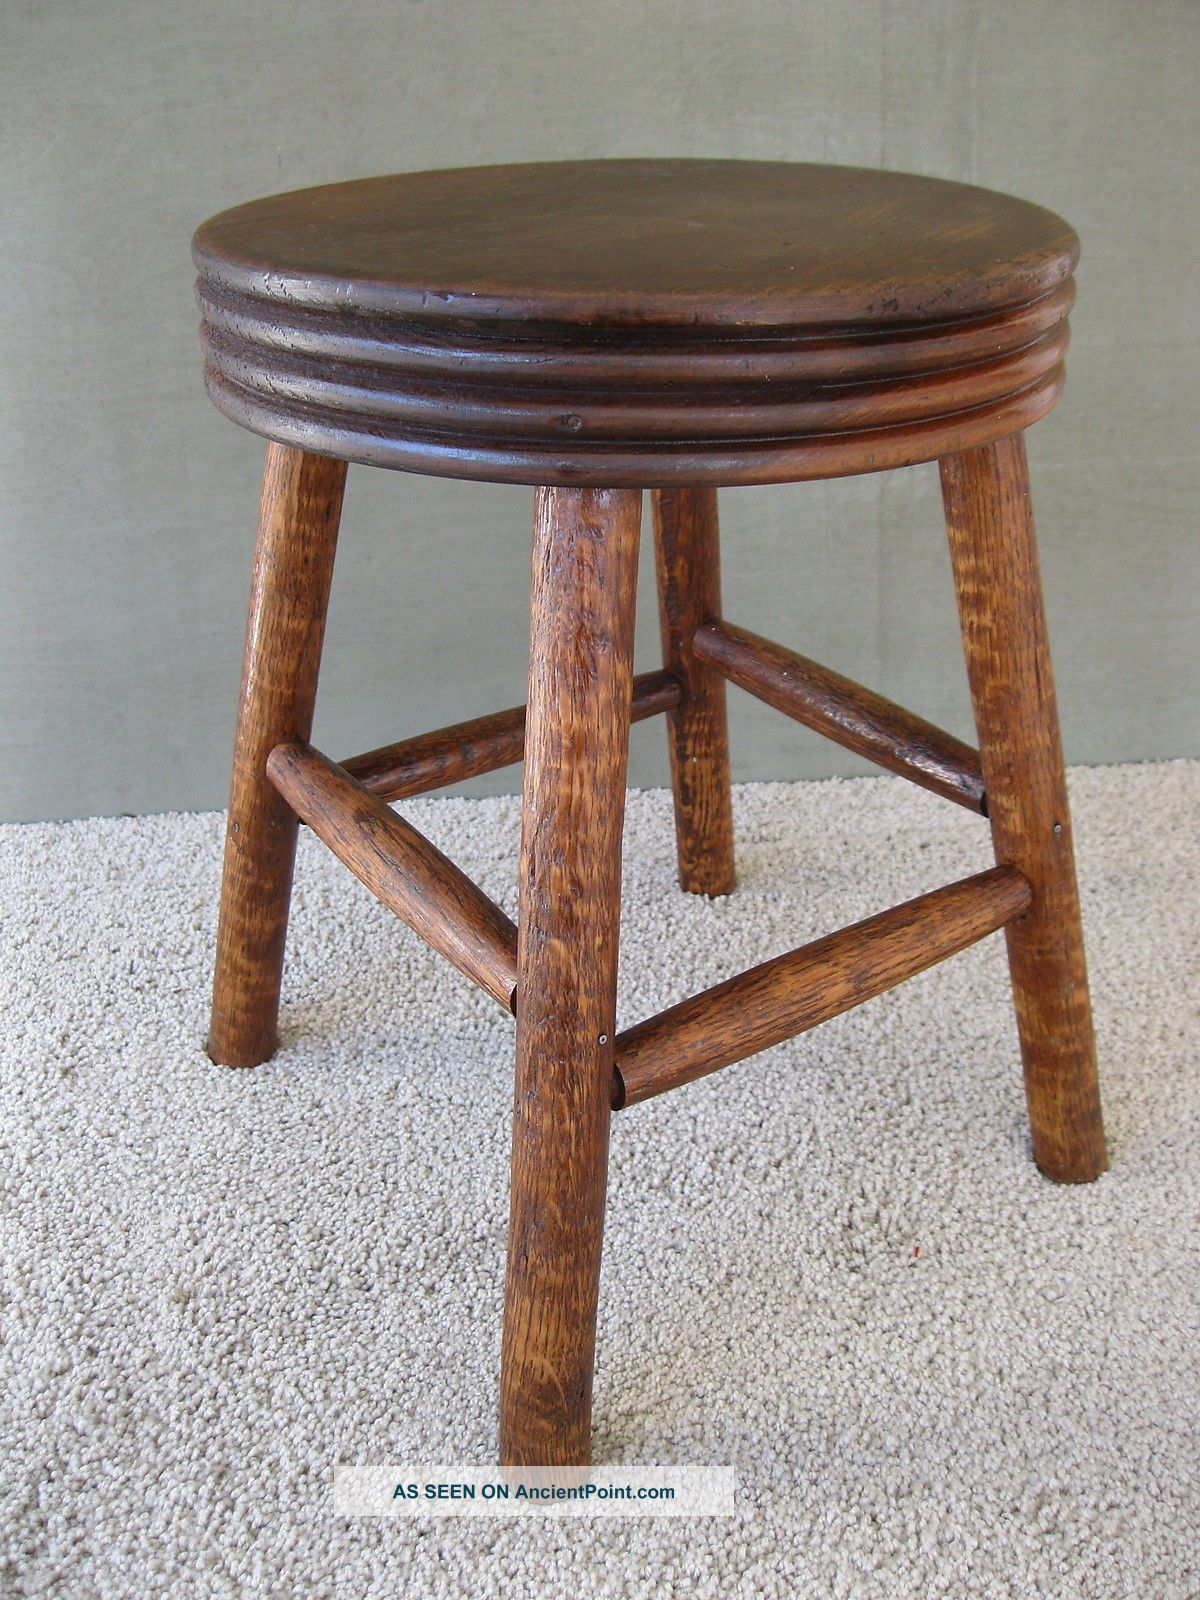 Antique Milking Stool Foot Bench Vintage Primitive Footstool,  Round,  Four Legs 1900-1950 photo